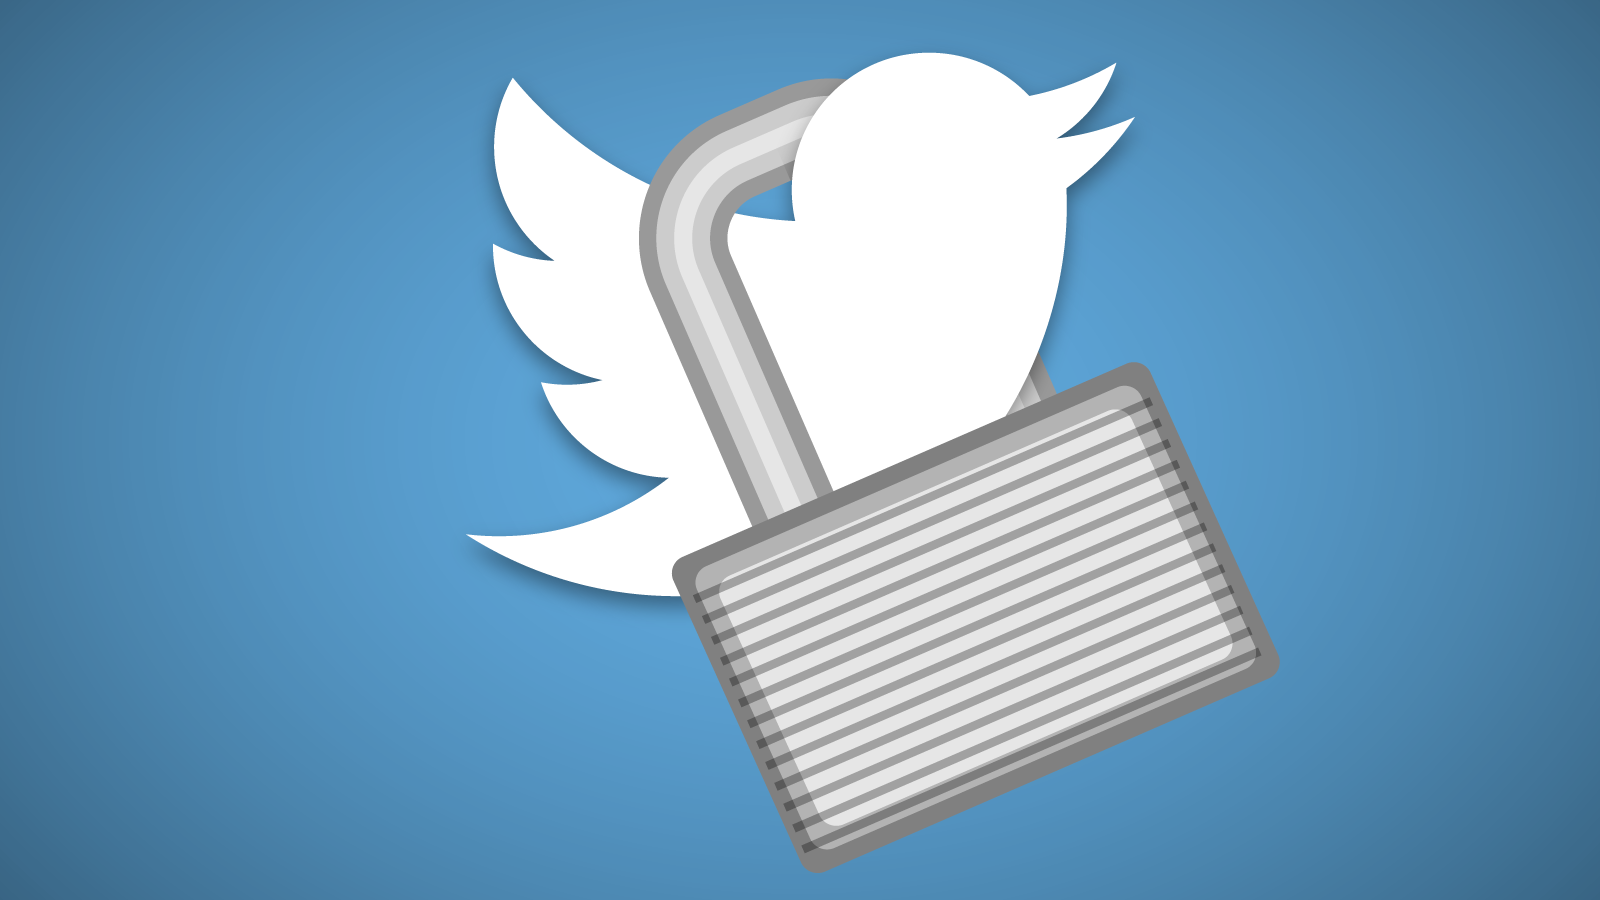 Twitter working on 'Secret Conversations' encrypted message feature